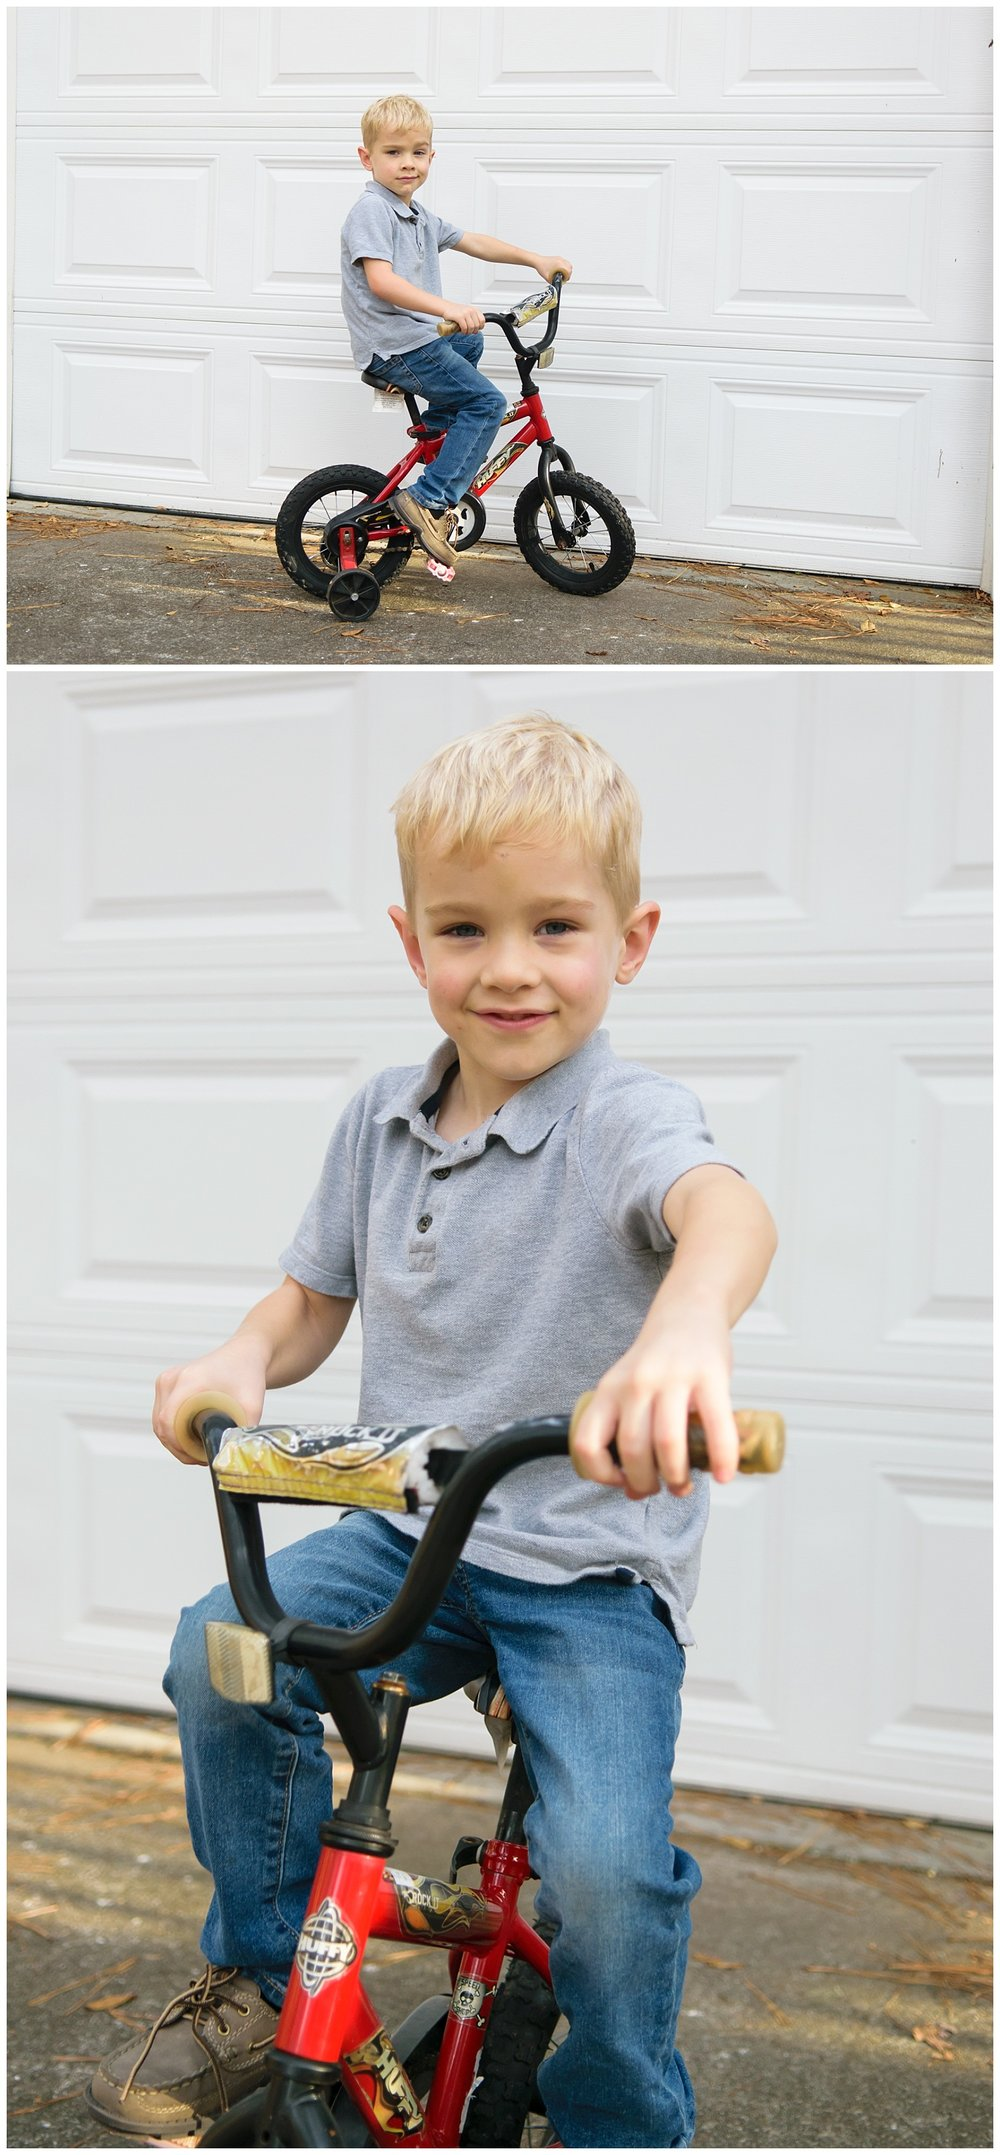 these are images of a young boy sitting on his bike in front of the family's garage in lilburn georgia. the images were taken during an in home lifestyle family session.